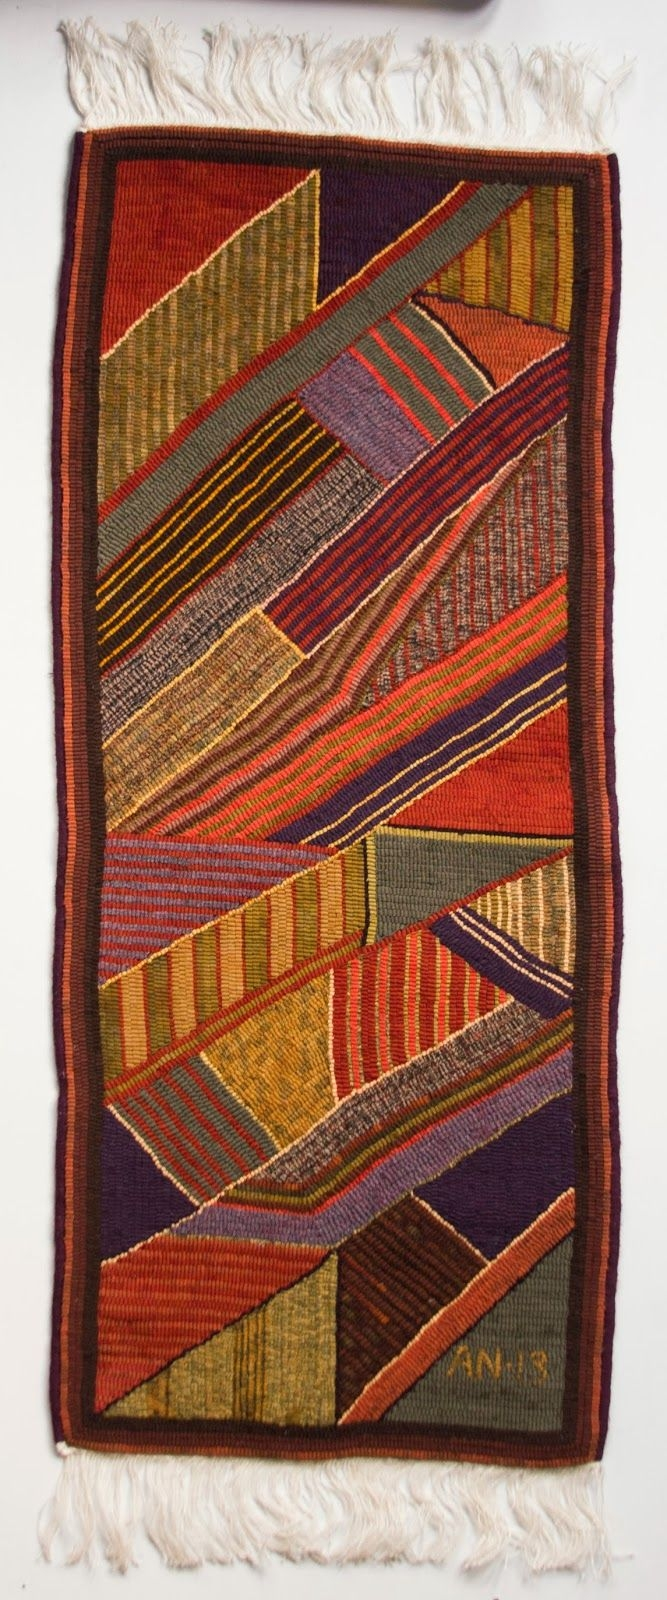 Best 20 Handmade Rugs Ideas On Pinterest Rag Rug Tutorial With Regard To Handmade Rugs (Image 6 of 15)